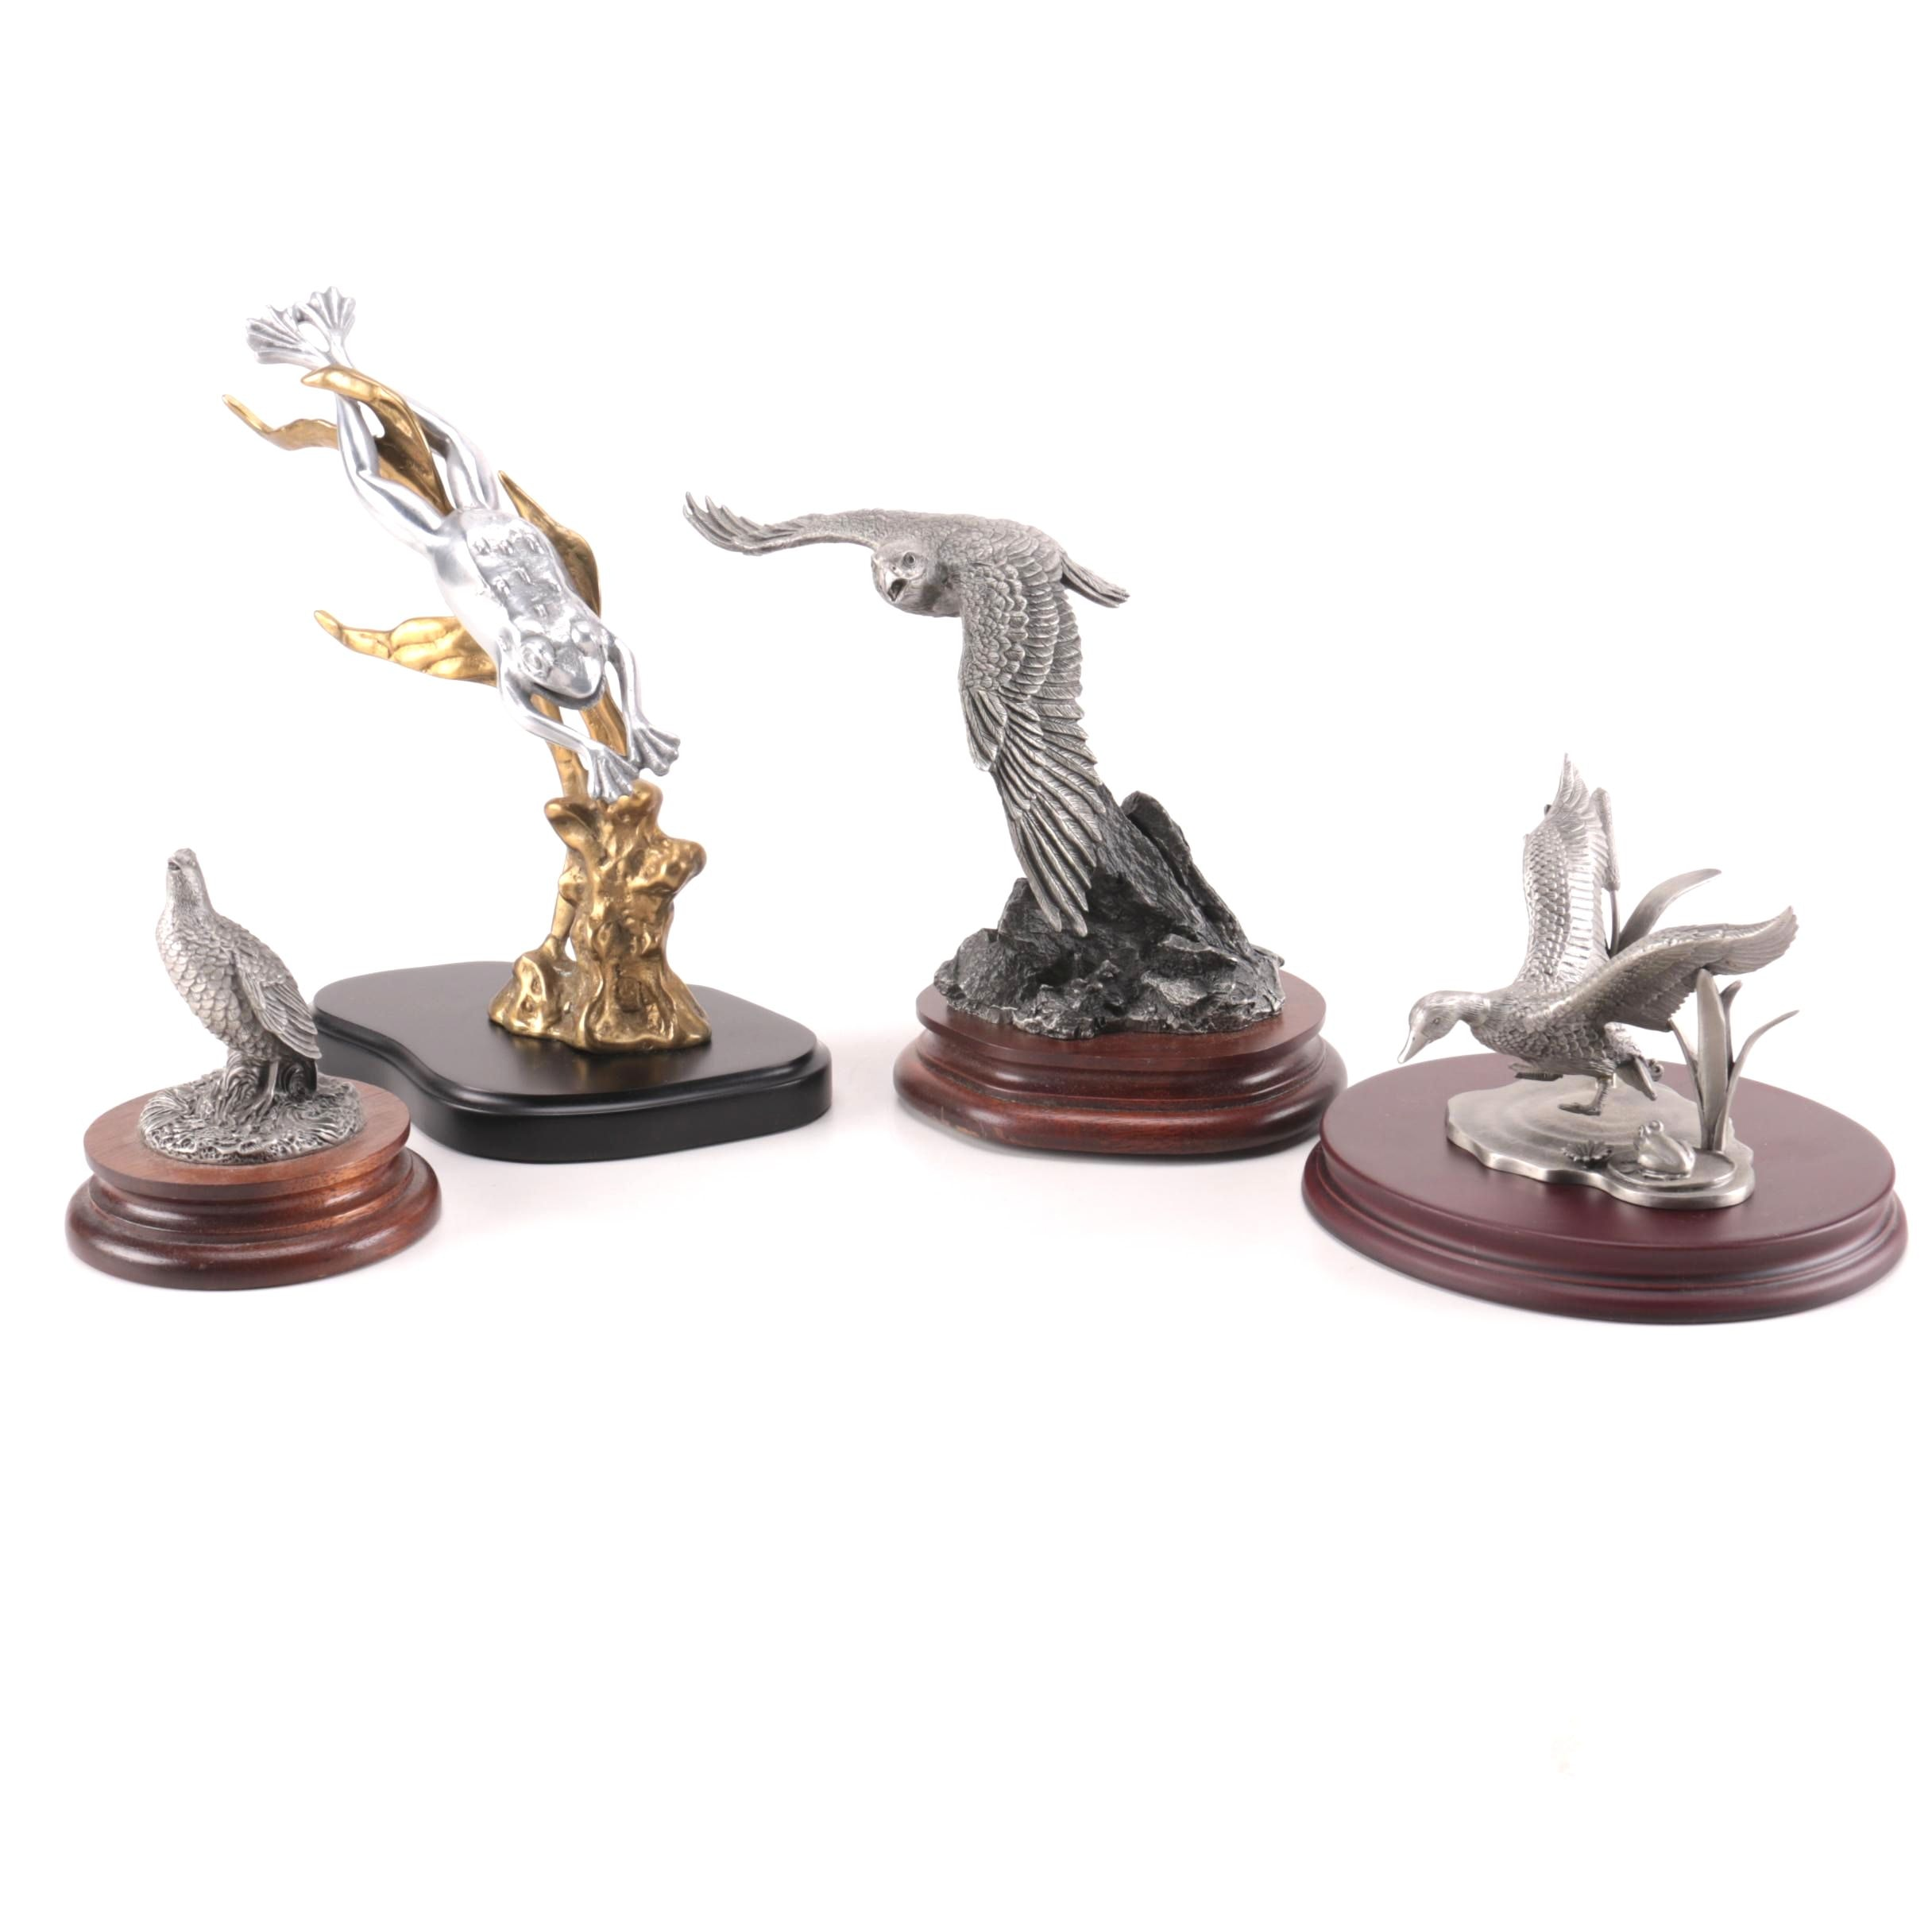 Pewter Bird Figurines on Wooden Bases